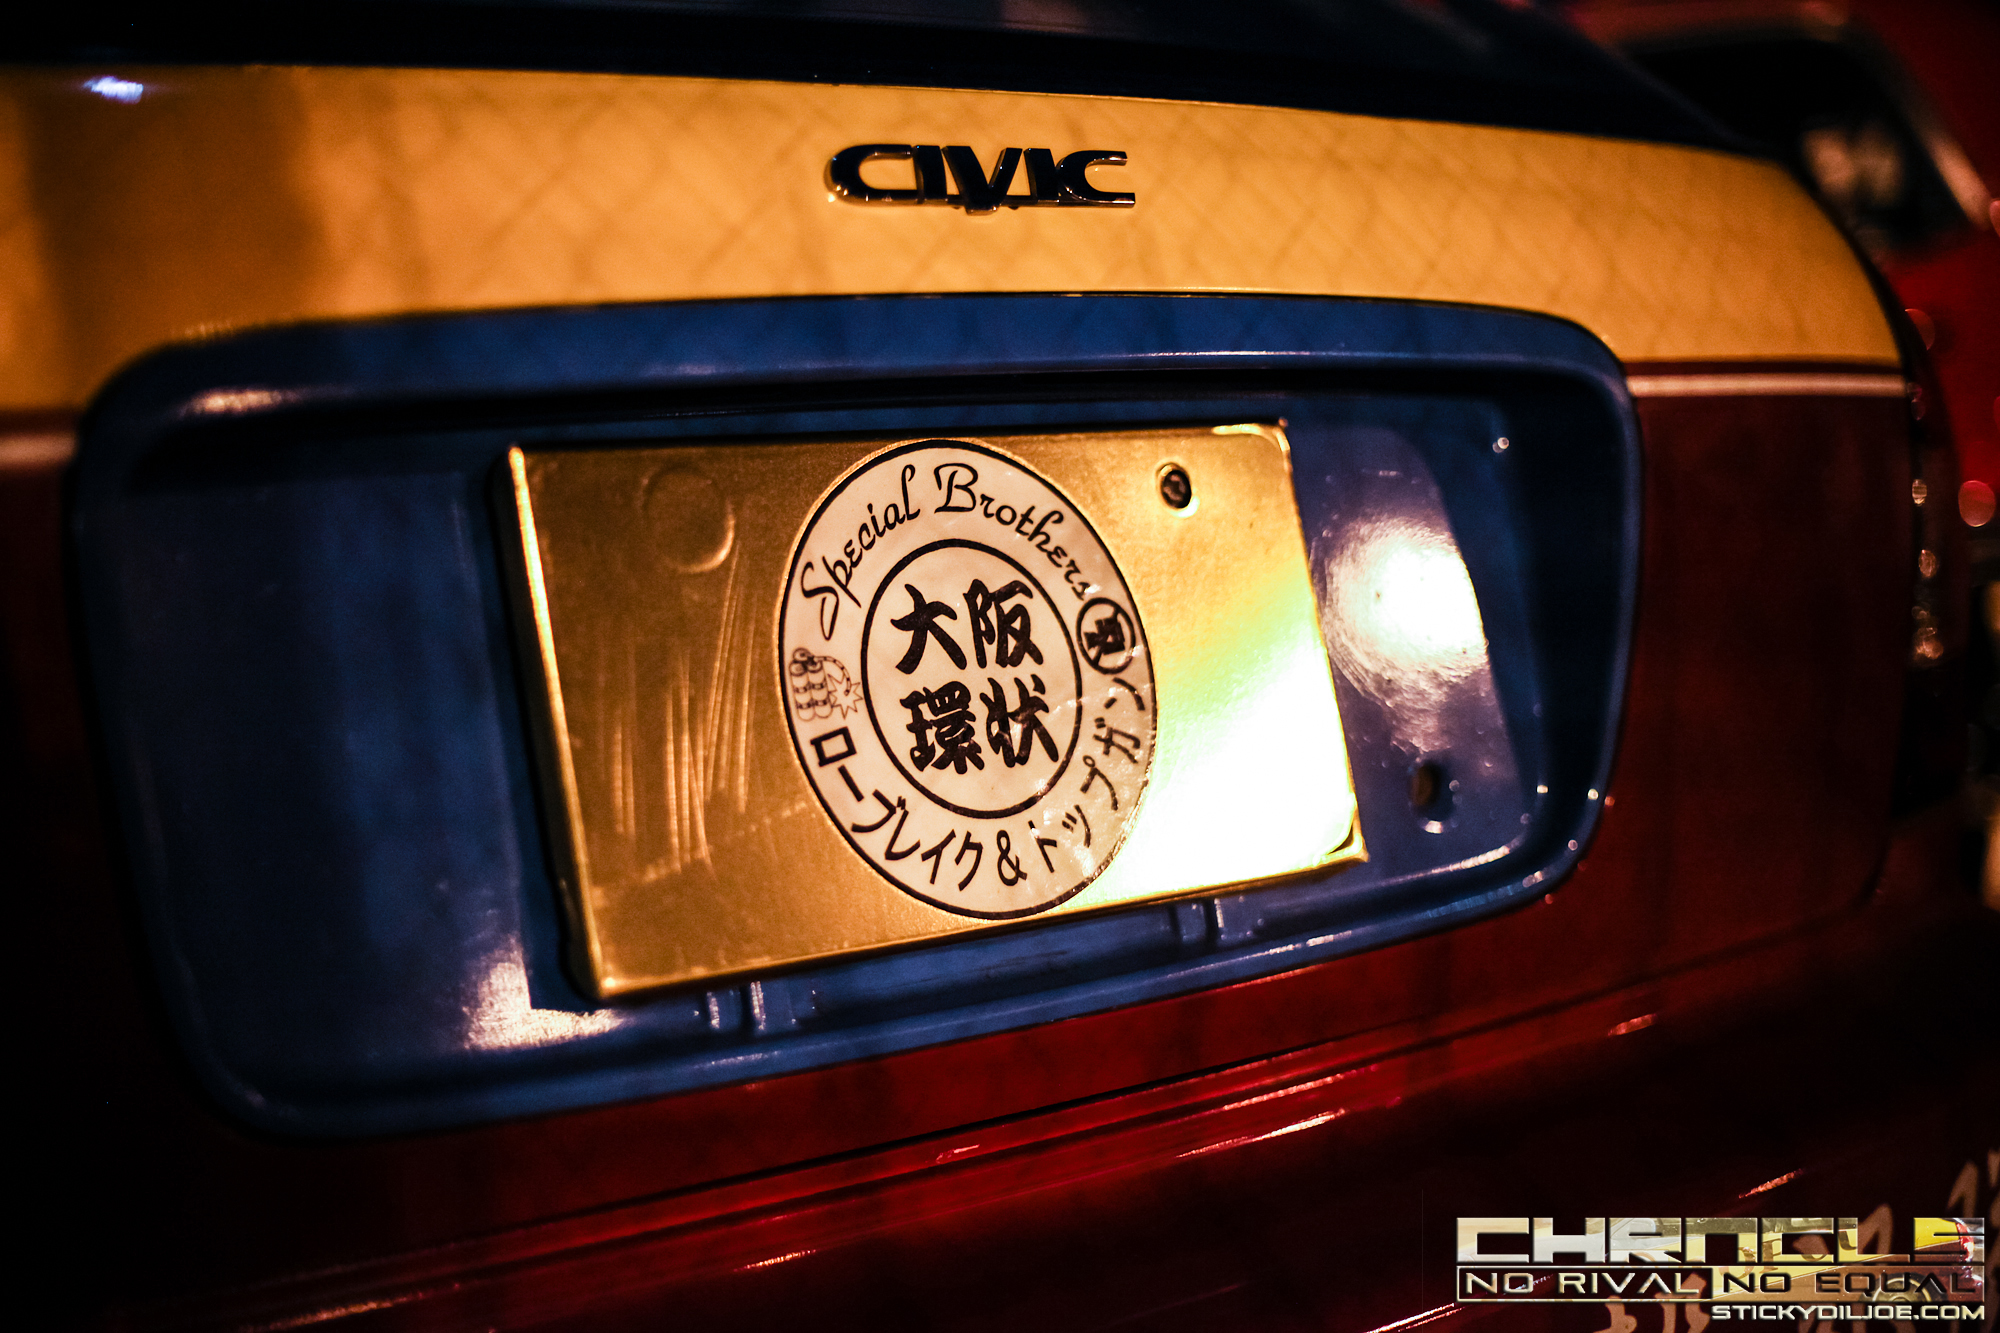 """Some car clubs even have a decal together that shows their union. This is a """"SPECIAL BROTHERS"""" decal that signifies the collaborative effort between LAW BREAK and TOP GUN Racing."""